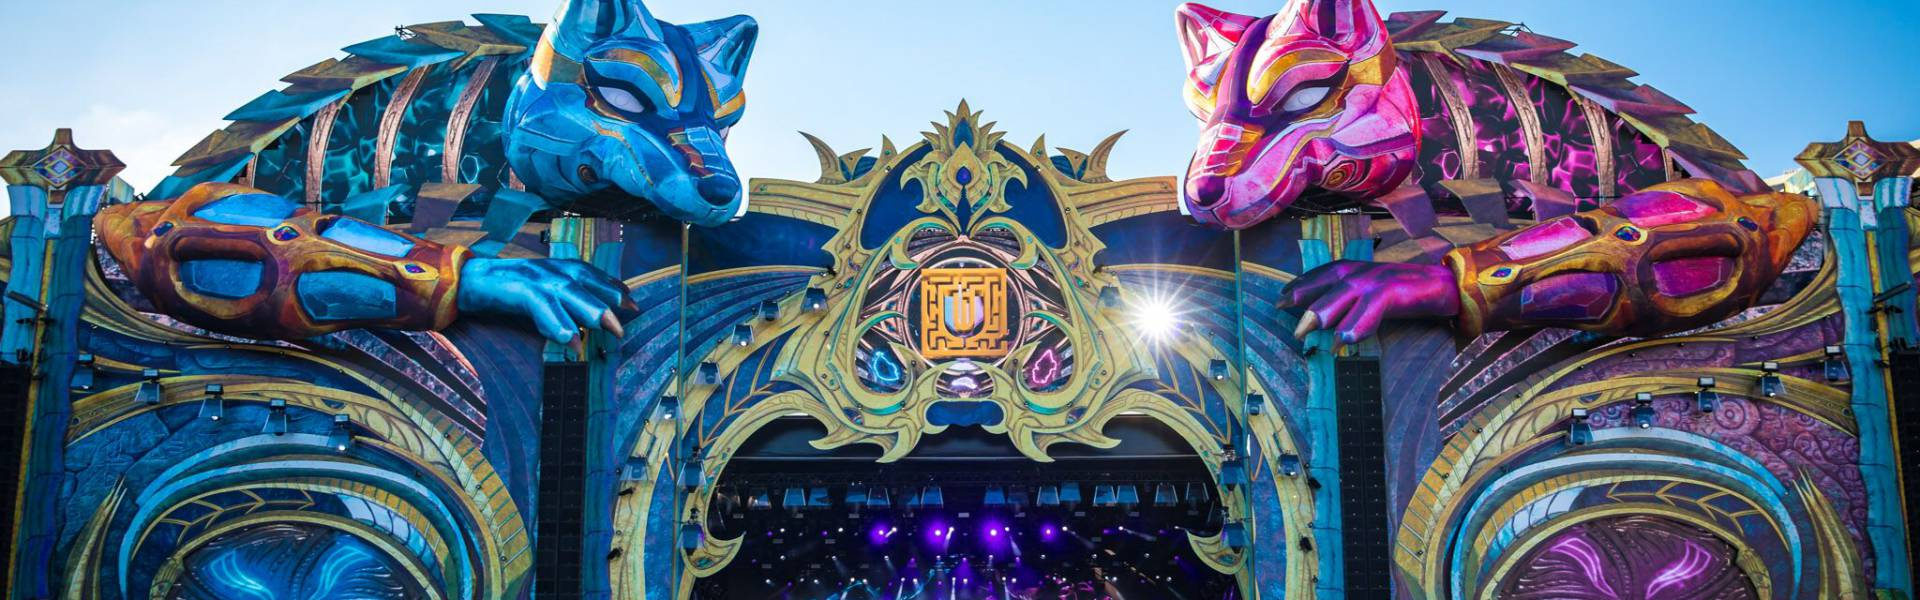 Large inflatable promotional material | X-Treme Creations 2 giant 3D wolves as stage decoration for Untold Festival UNTOLD Festival Leisure Expert Group / 250K X-Treme Creations